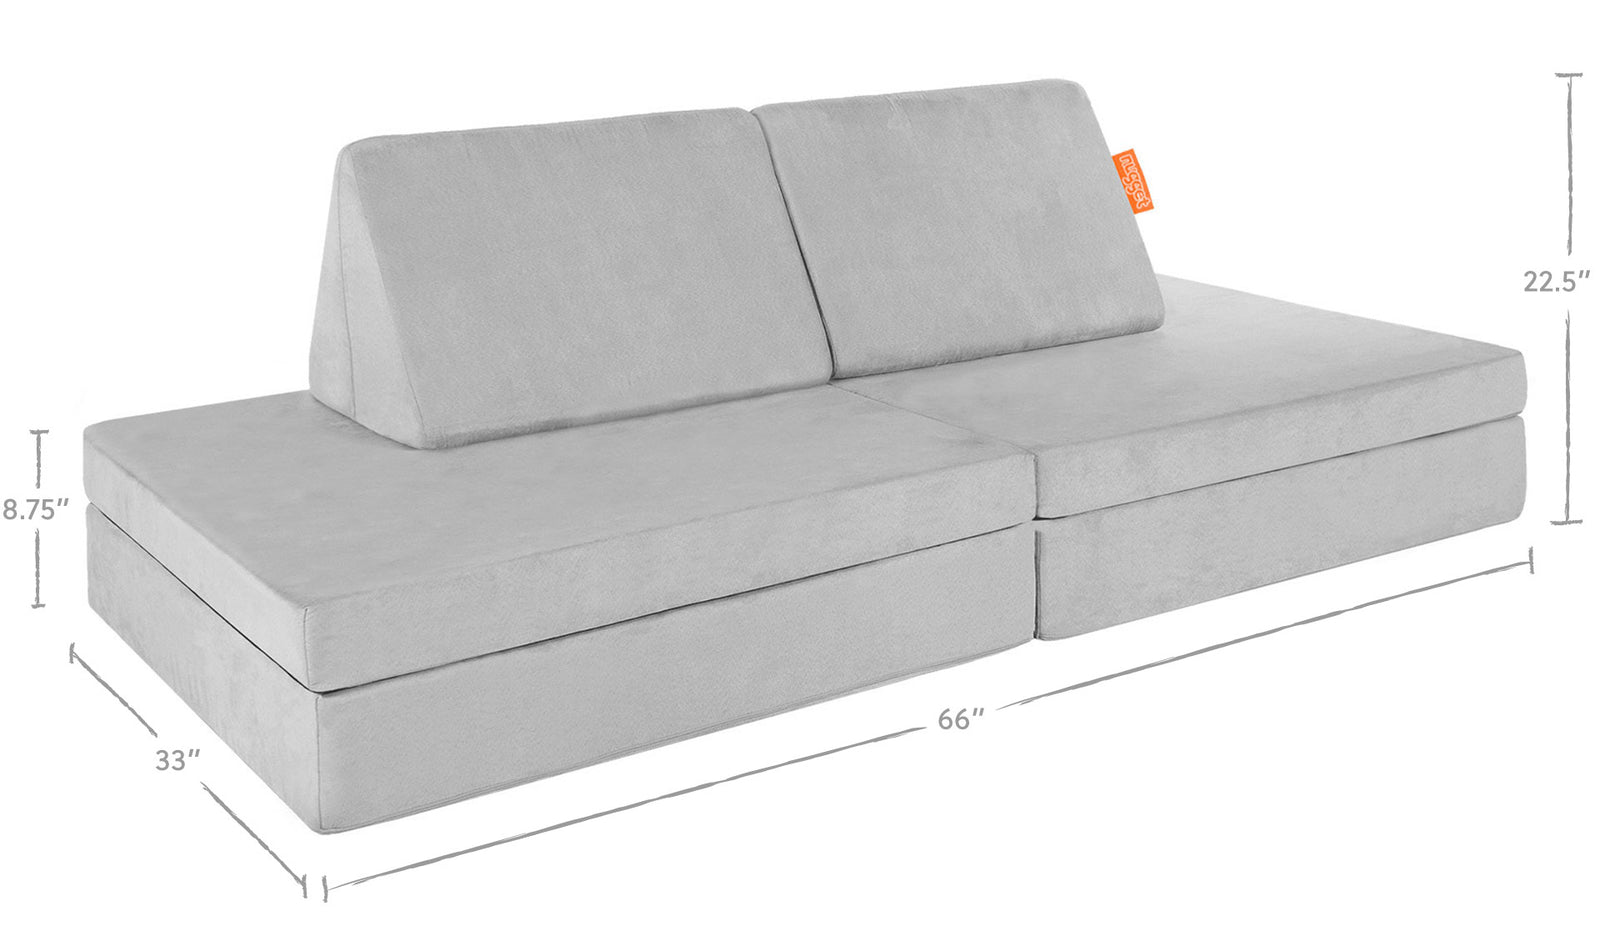 The Nugget | The original play couch | Free U.S. Shipping